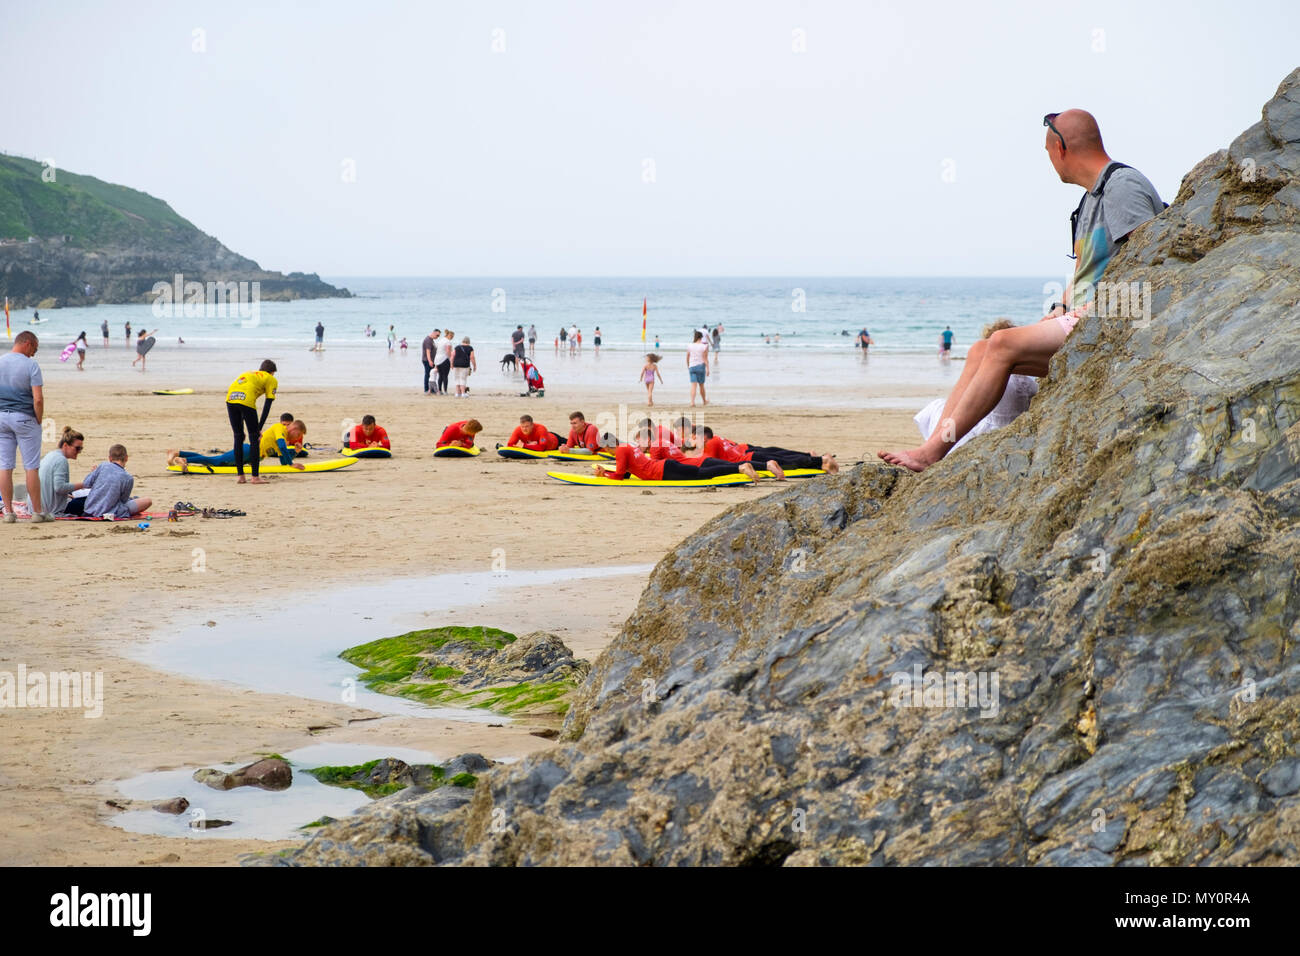 A man looks on as surf school lessons take place on the fistral beach, newquay, uk - Stock Image